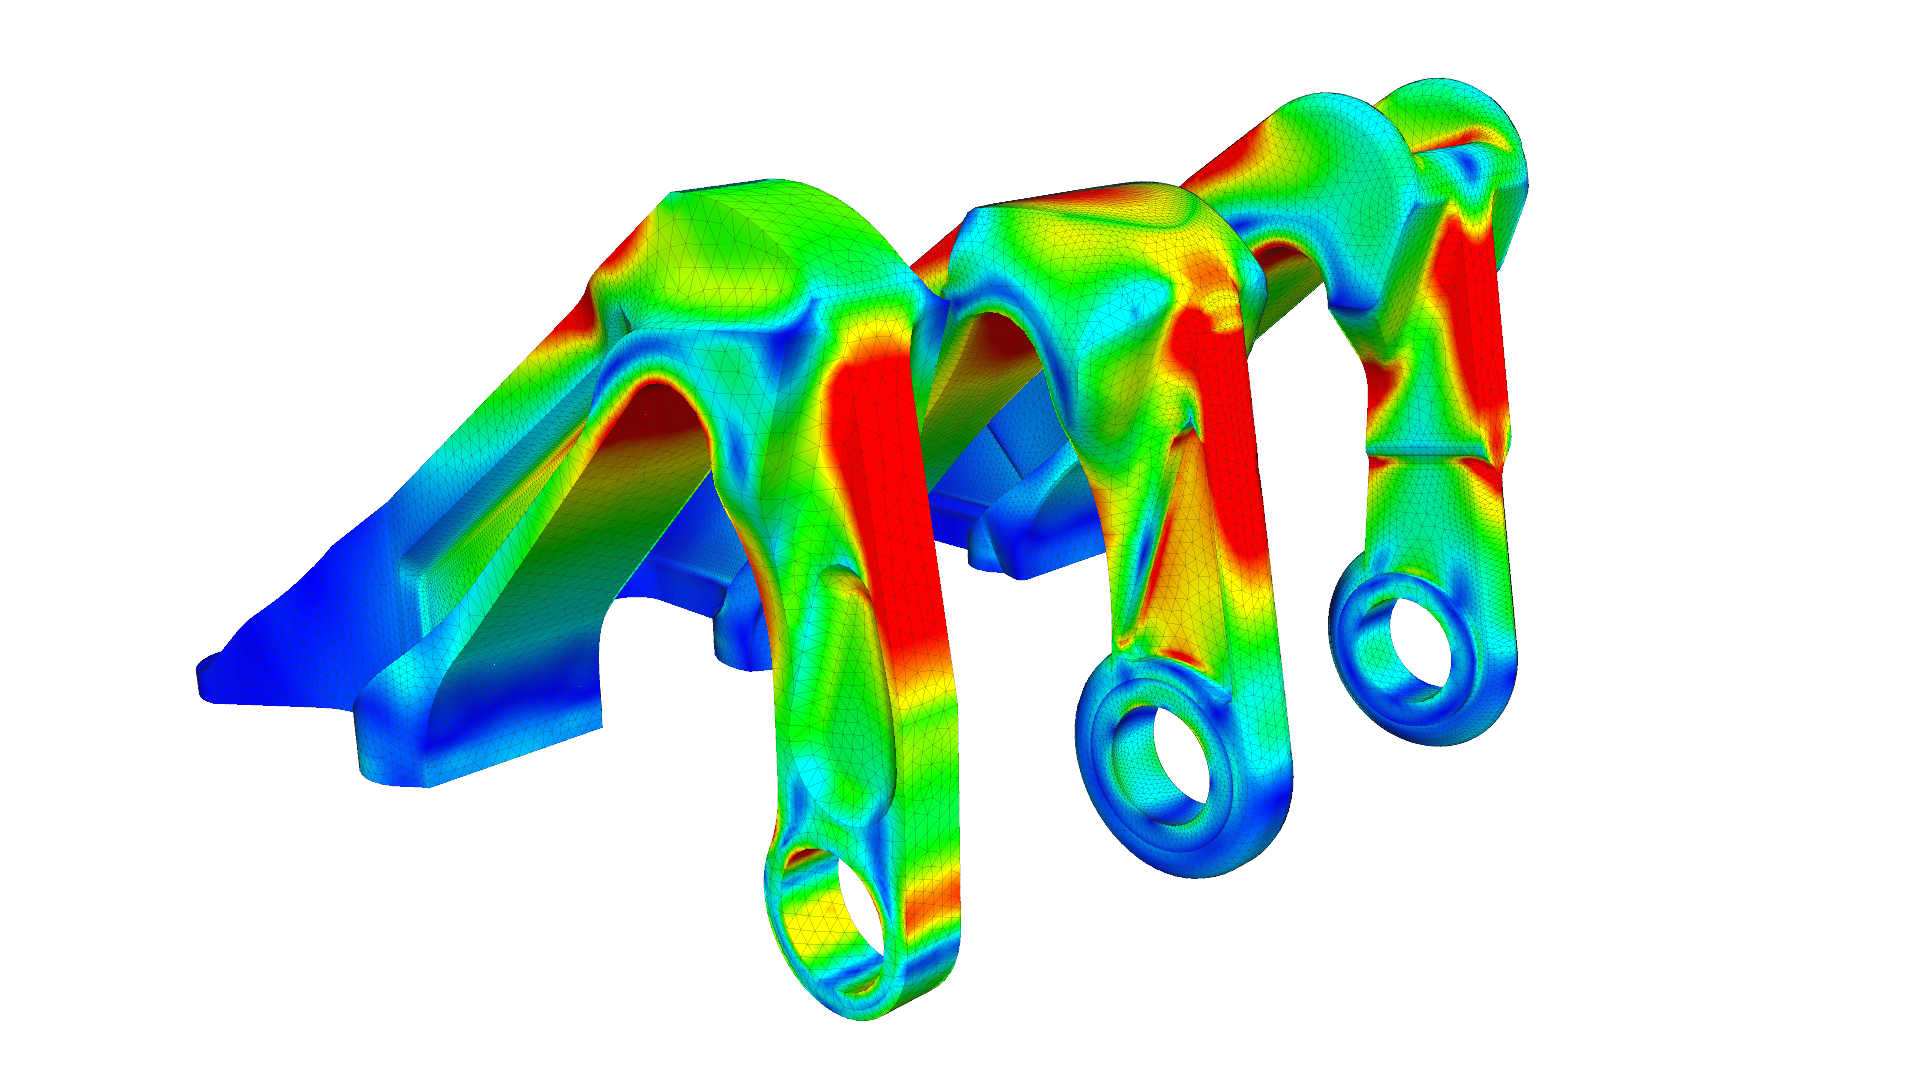 Structural analysis of the engine bracket of an aircraft engine with SimScale FEA